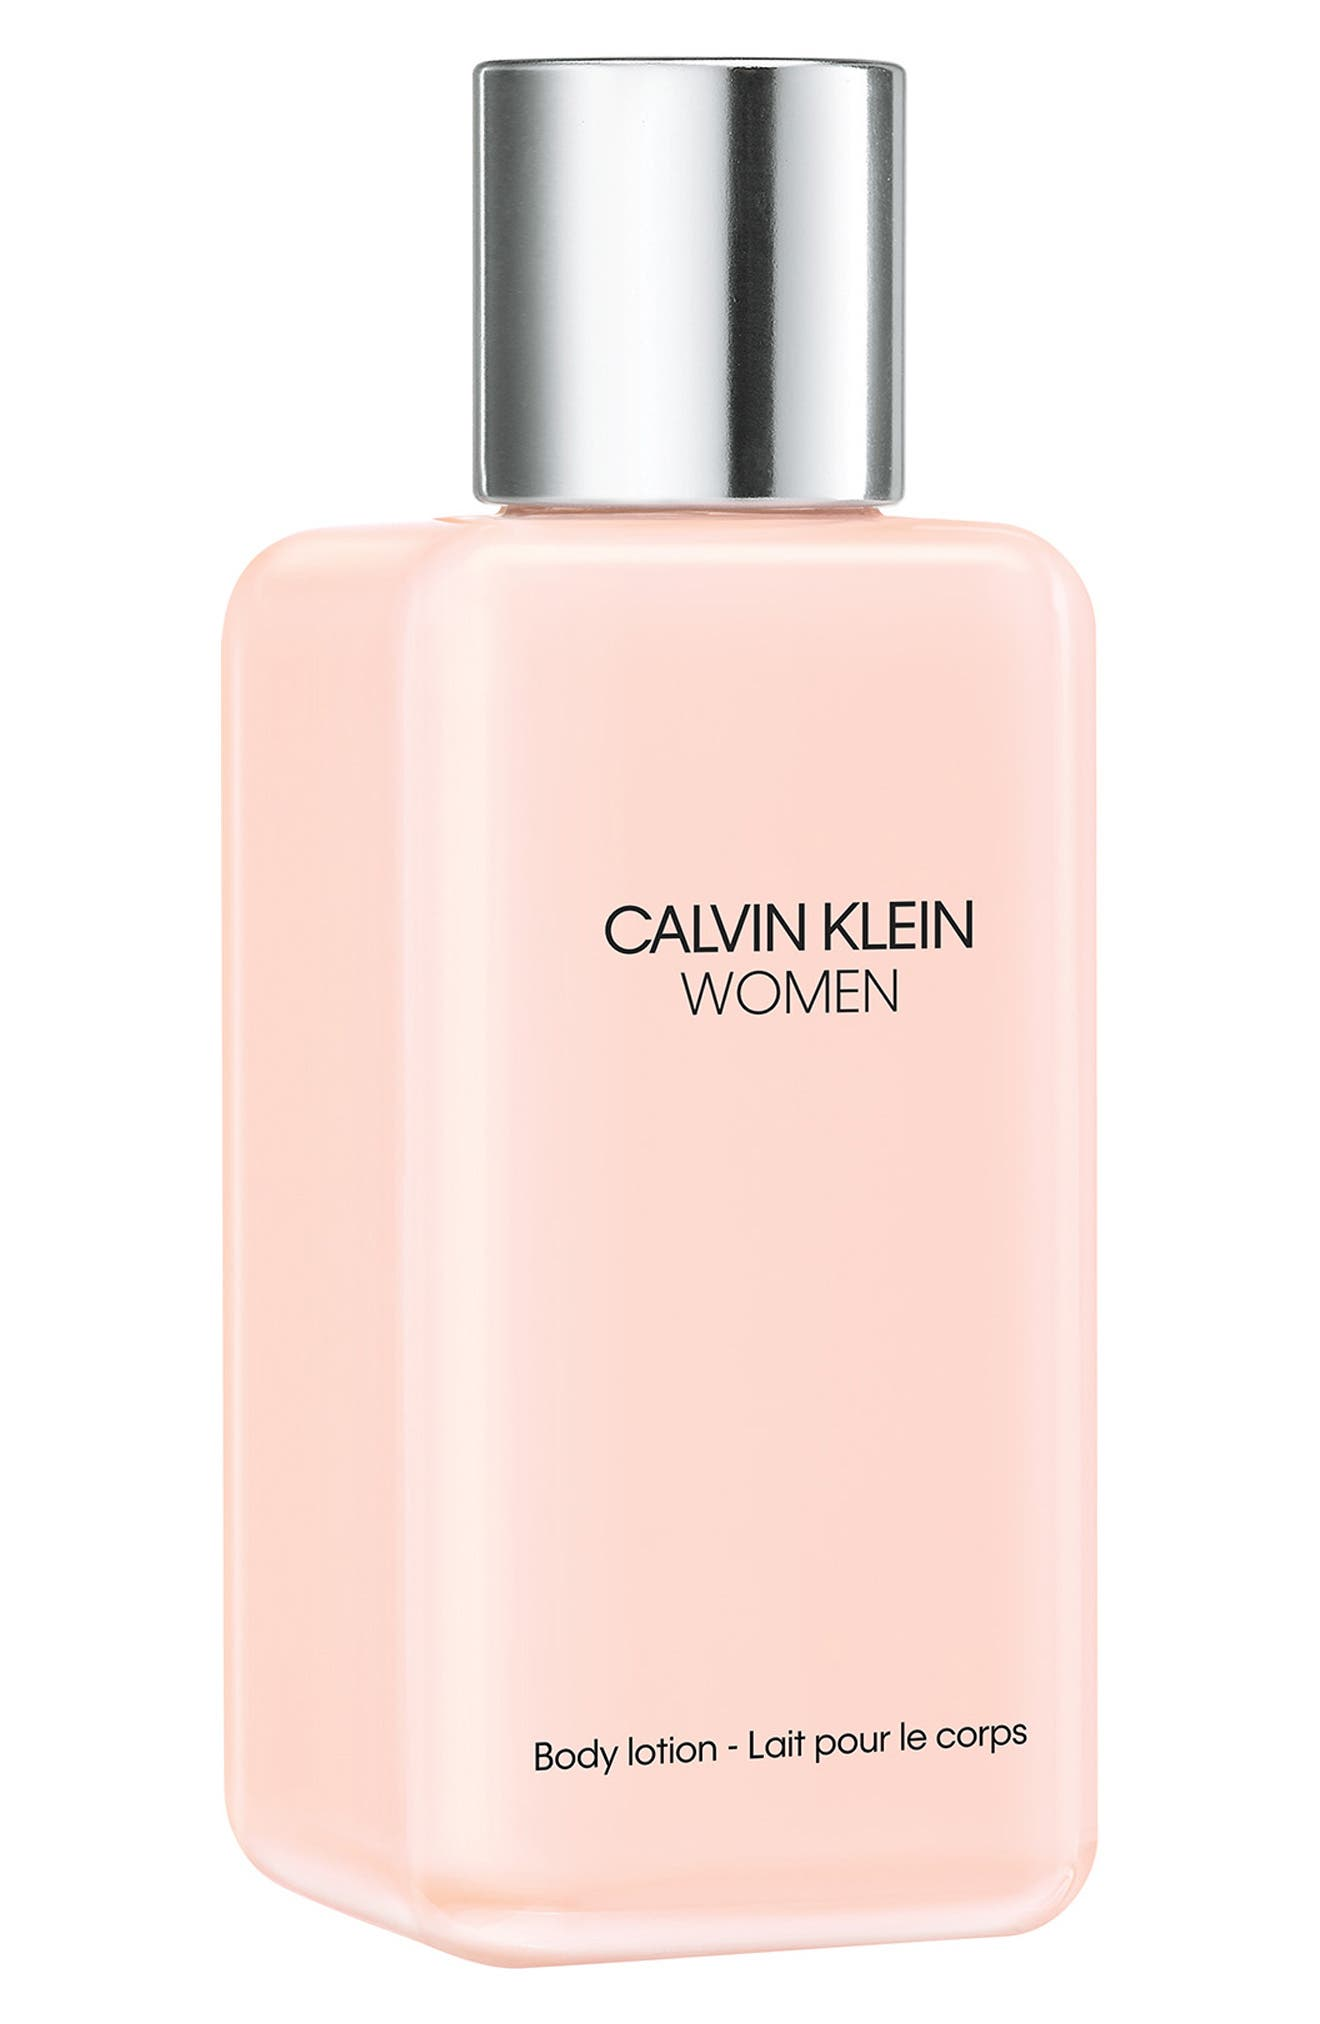 Calvin Klein Women Body Lotion